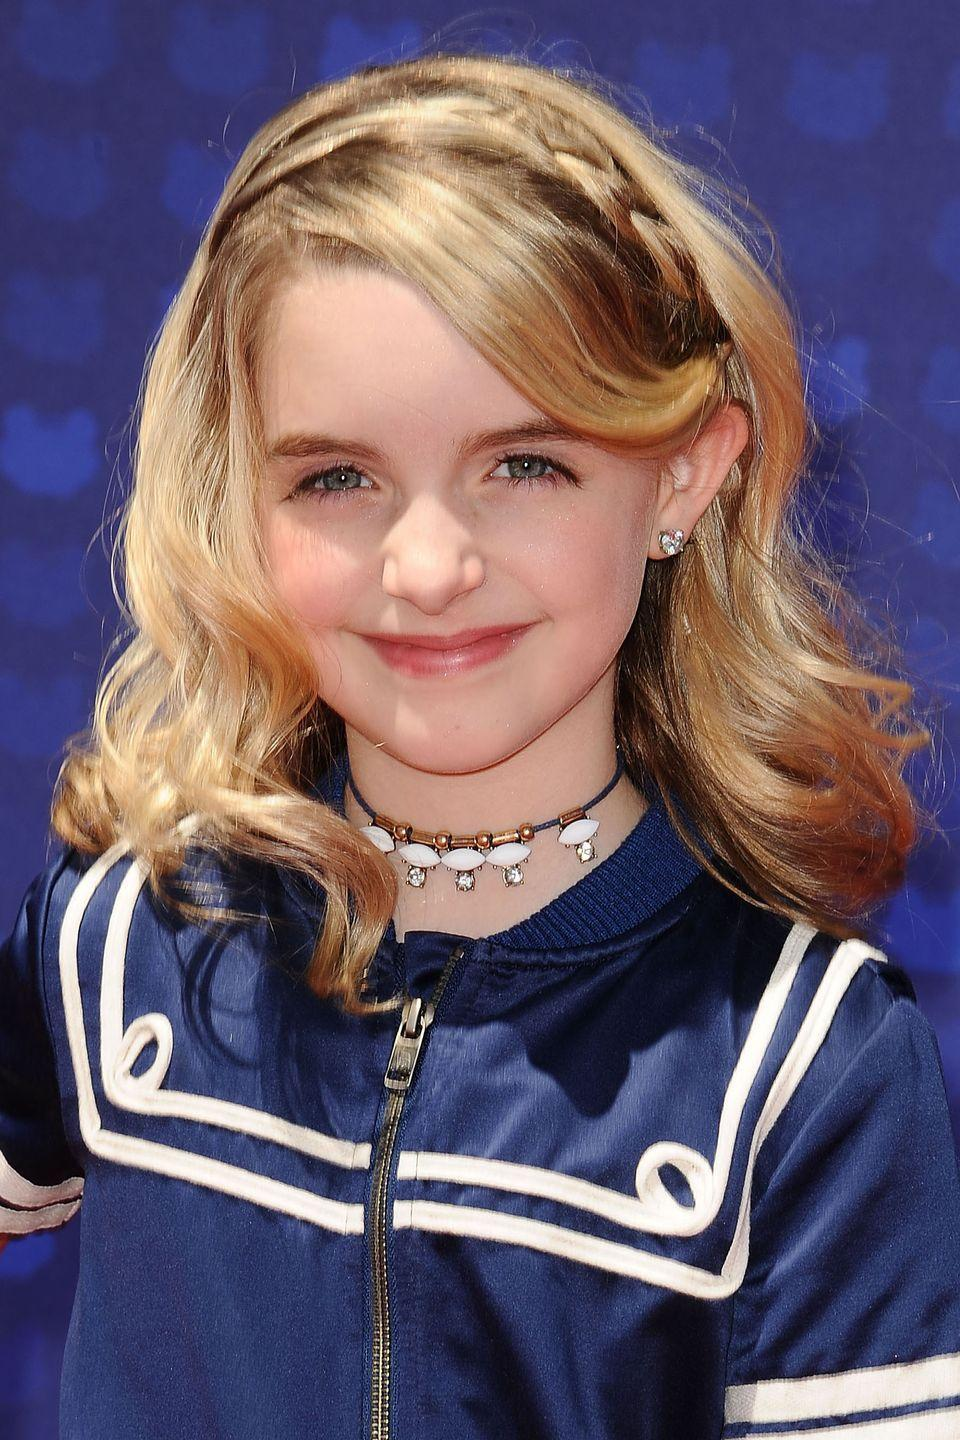 <p>Dress up plain hair with an easy braided headband like <strong>McKenna Grace</strong>'s. Seriously, all you need is a bobby pin and some novice braiding skills. </p>